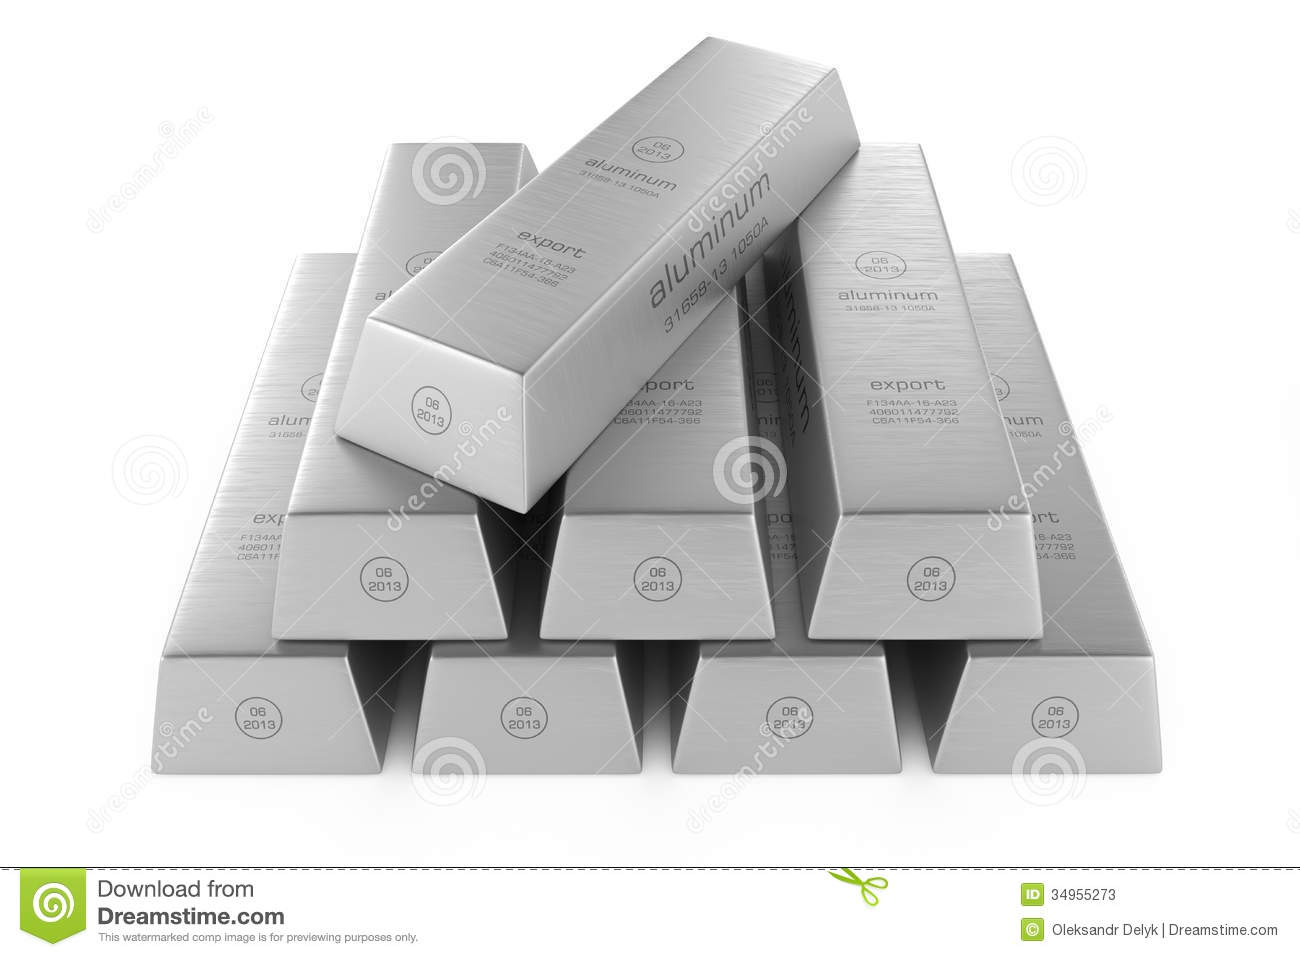 Image Result For Metallic Square Business